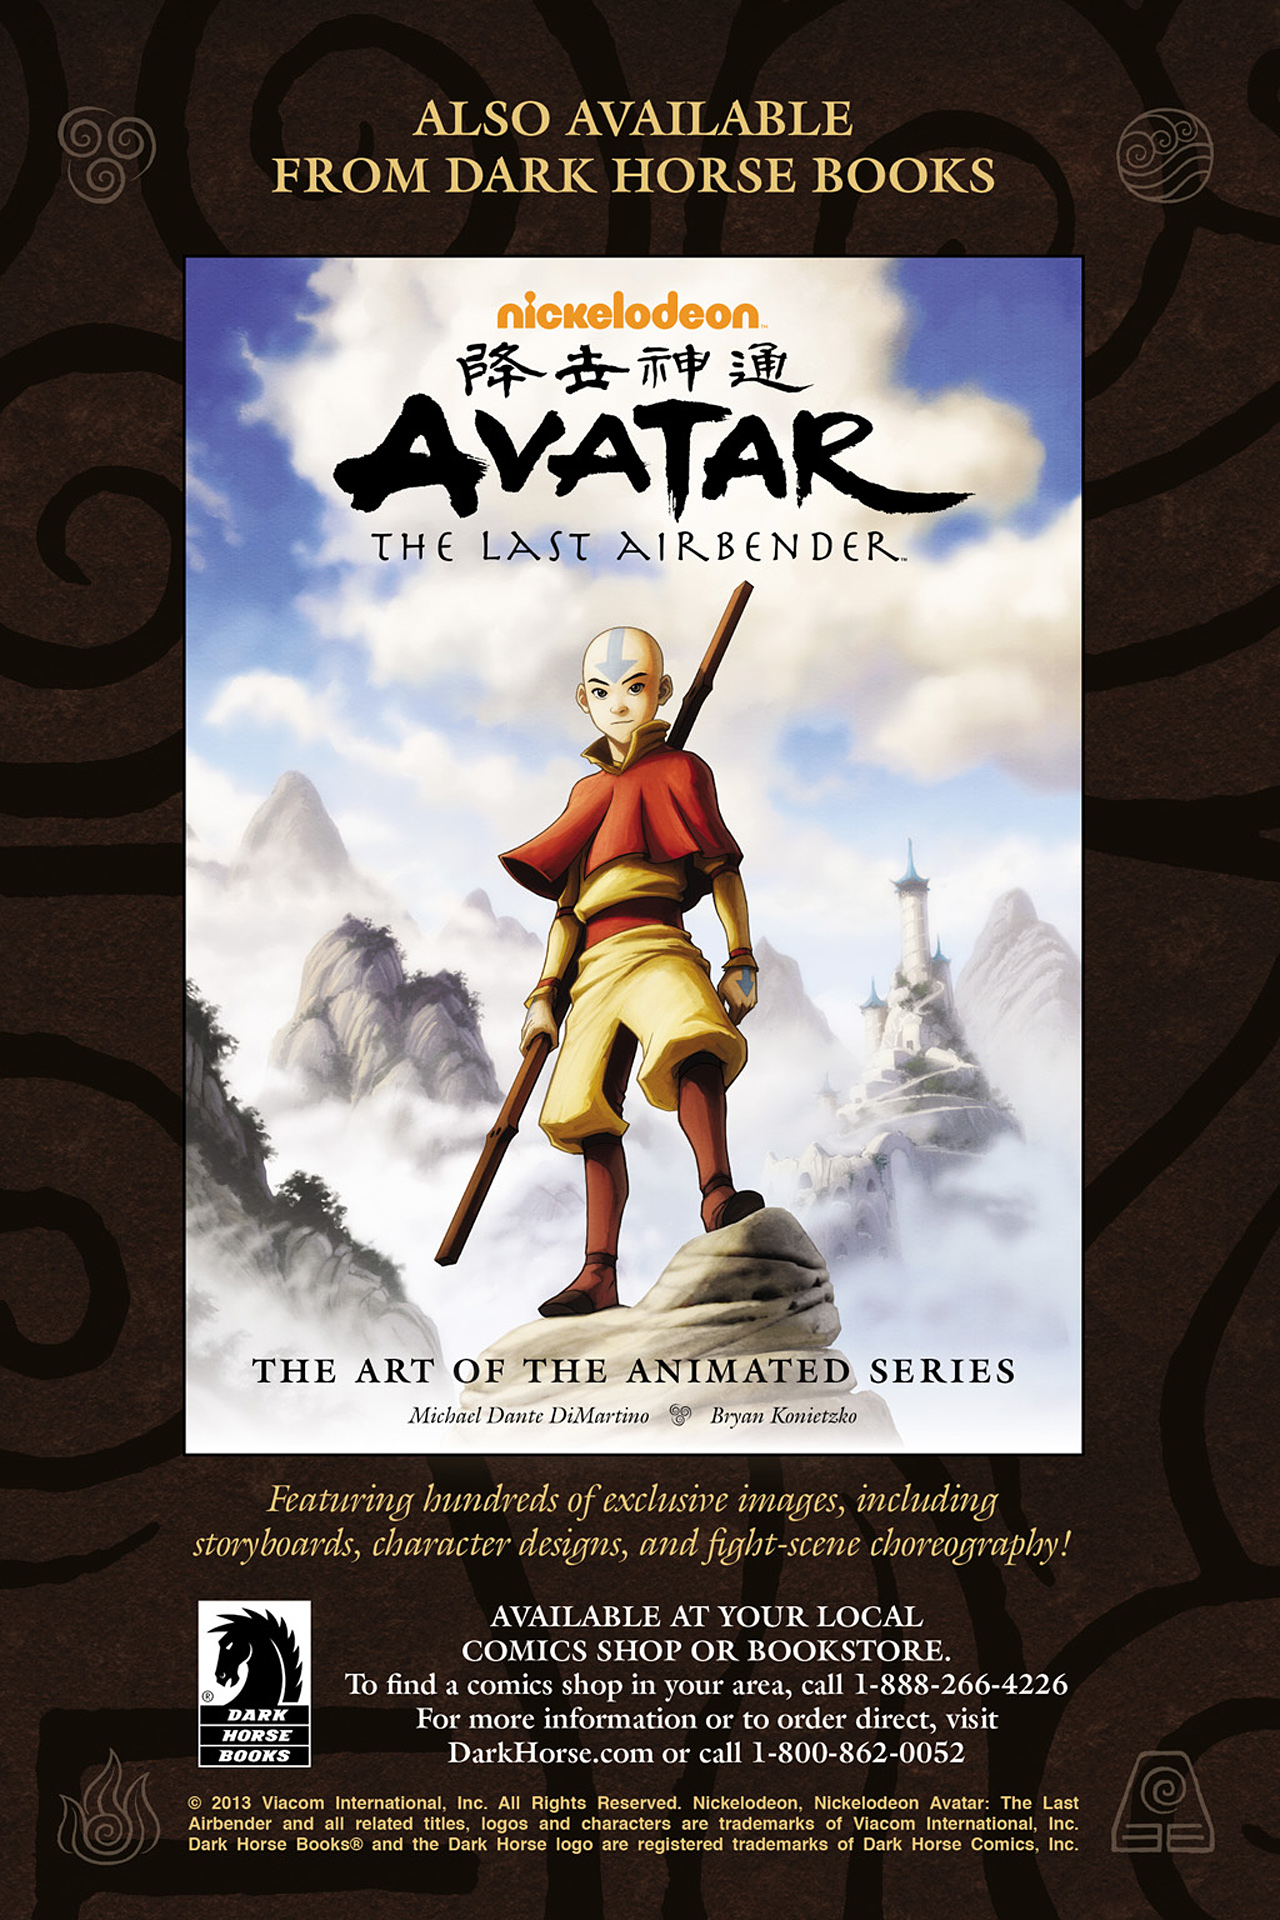 Read online Nickelodeon Avatar: The Last Airbender - The Search comic -  Issue # Part 1 - 80